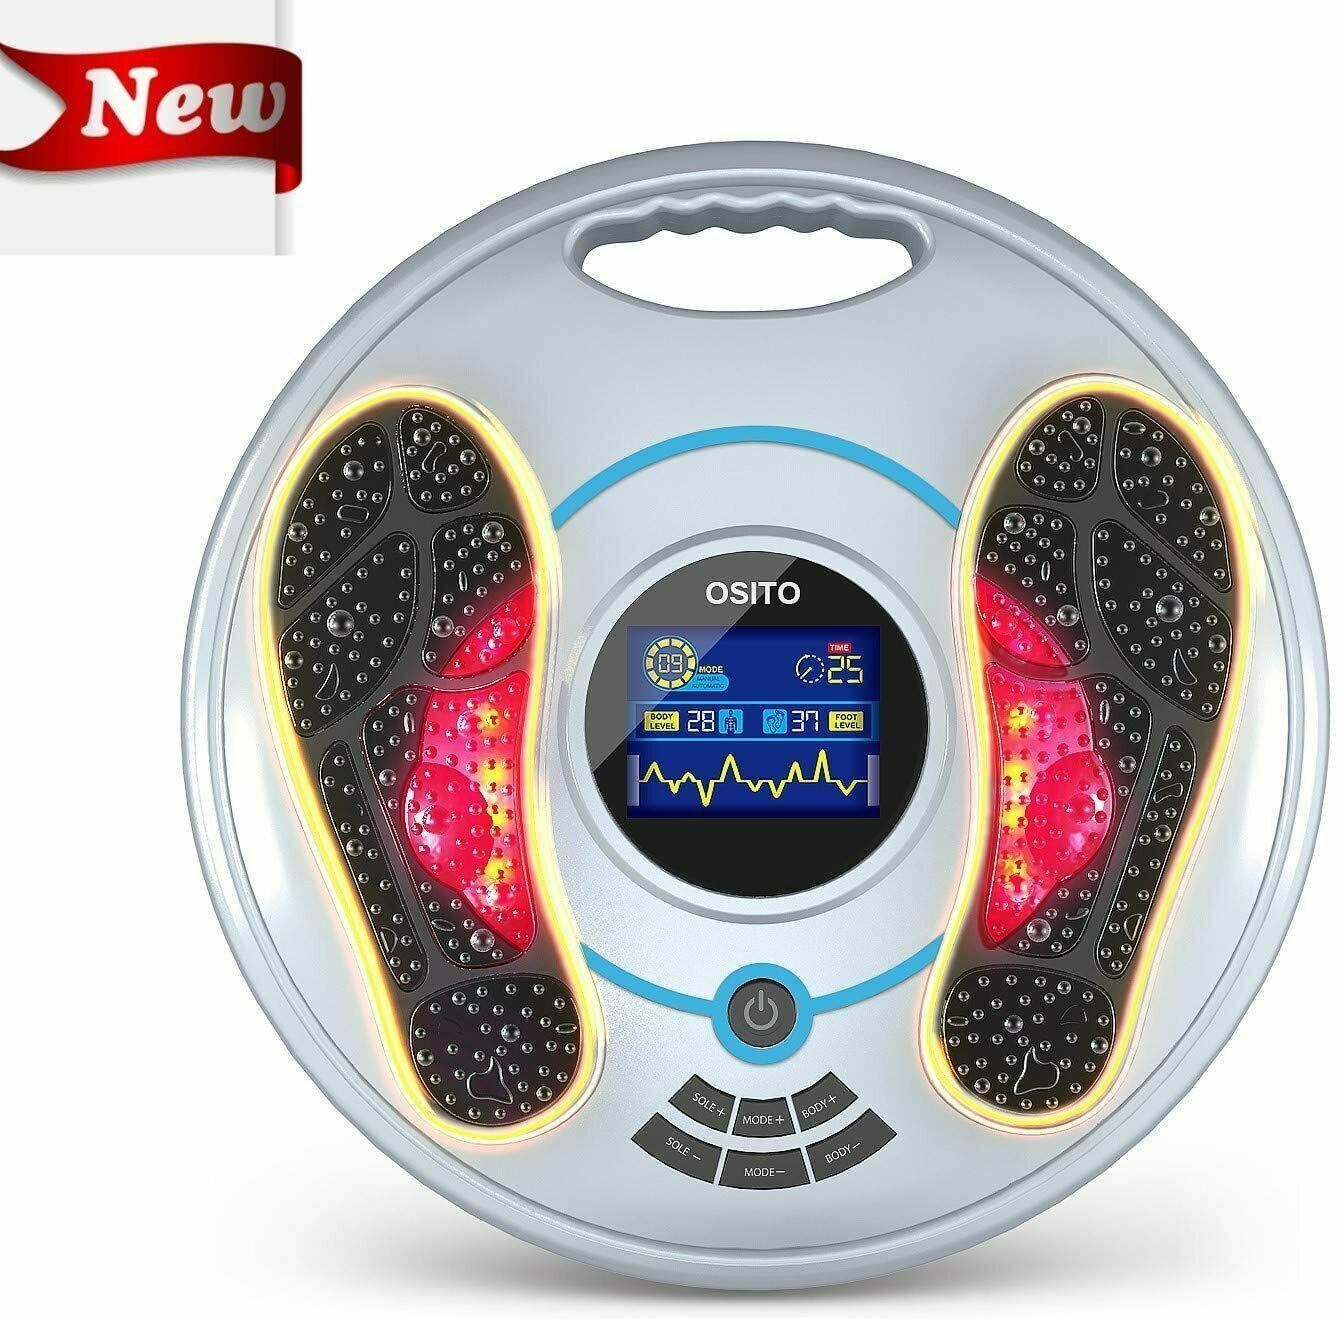 OSITO Foot Massager Machine - Feet Legs Circulation Devices